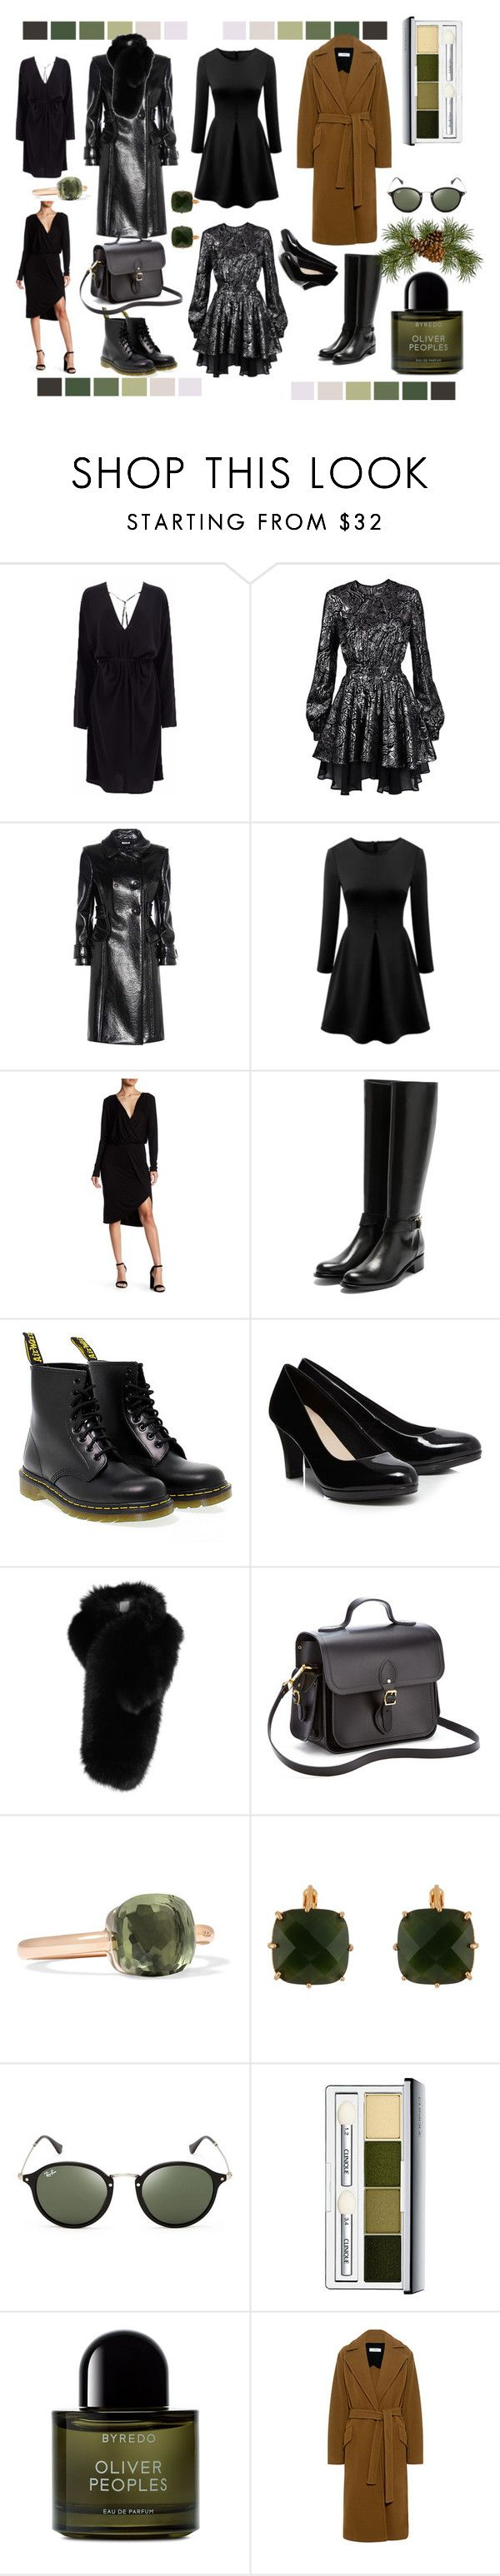 """""""midi black dress mood"""" by jioulianova ❤ liked on Polyvore featuring Just Cavalli, Miu Miu, WithChic, Young, Fabulous & Broke, Rupert Sanderson, Dr. Martens, Lilly e Violetta, The Cambridge Satchel Company, Pomellato and Les Néréides"""